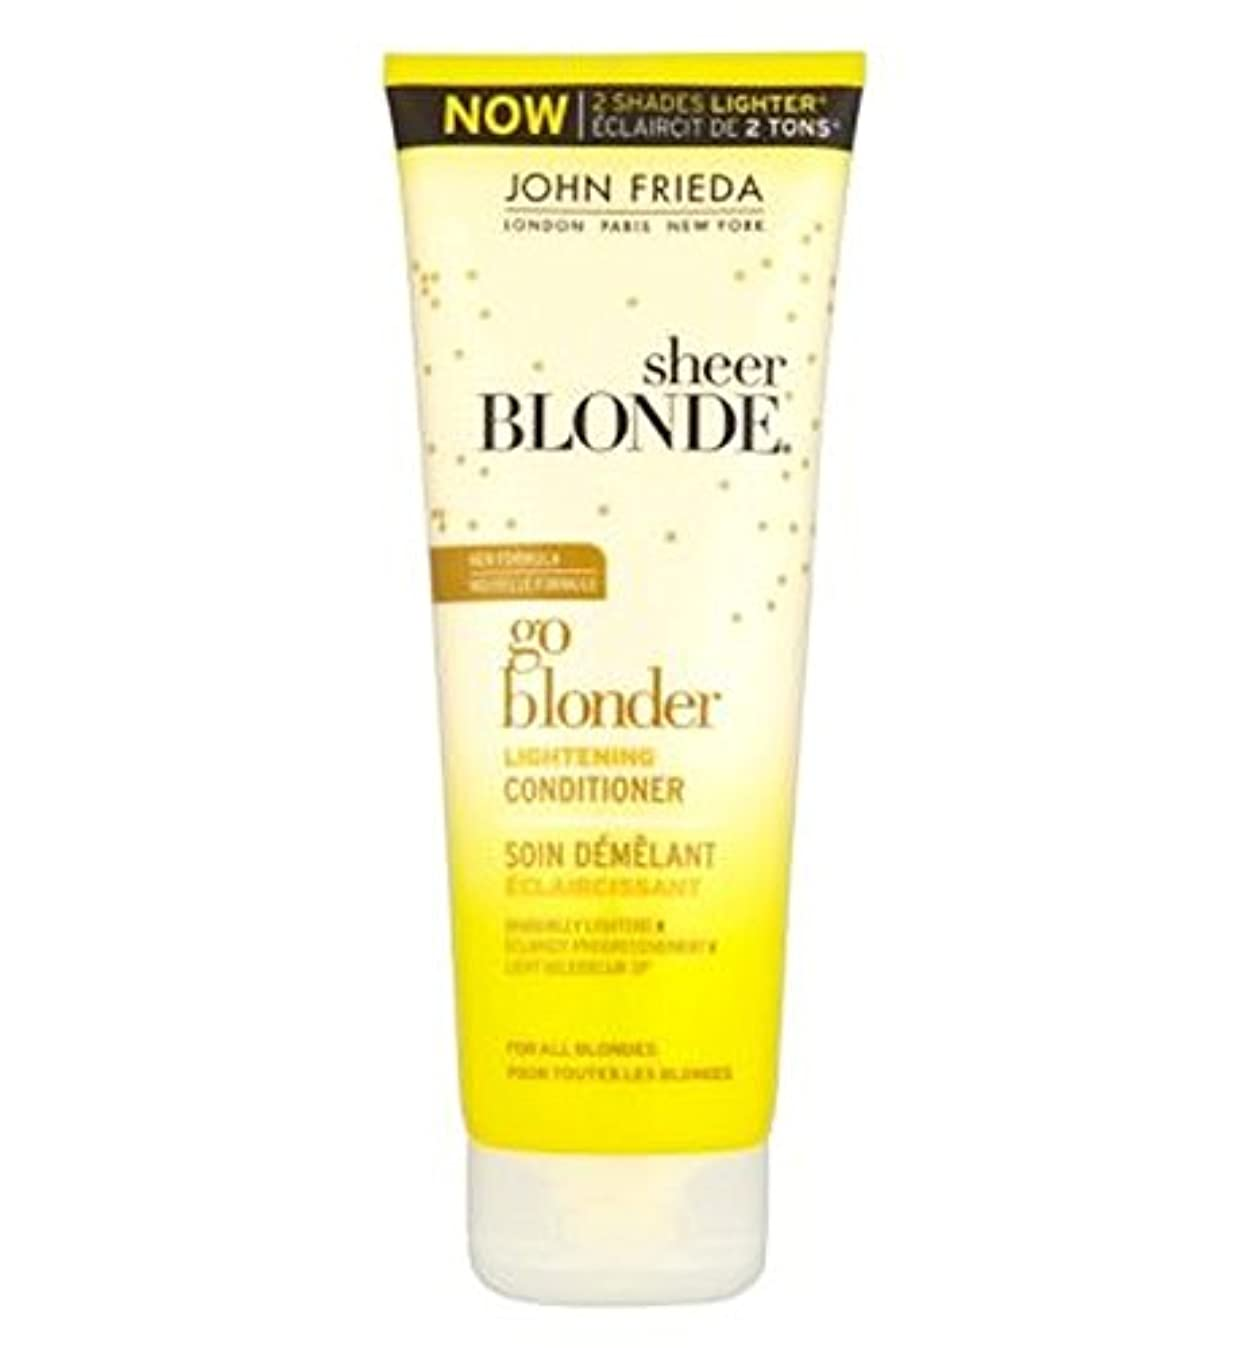 ジョン?フリーダ薄手ブロンド行くBlonder美白コンディショナー250Ml (John Frieda) (x2) - John Frieda Sheer Blonde Go Blonder Lightening Conditioner...